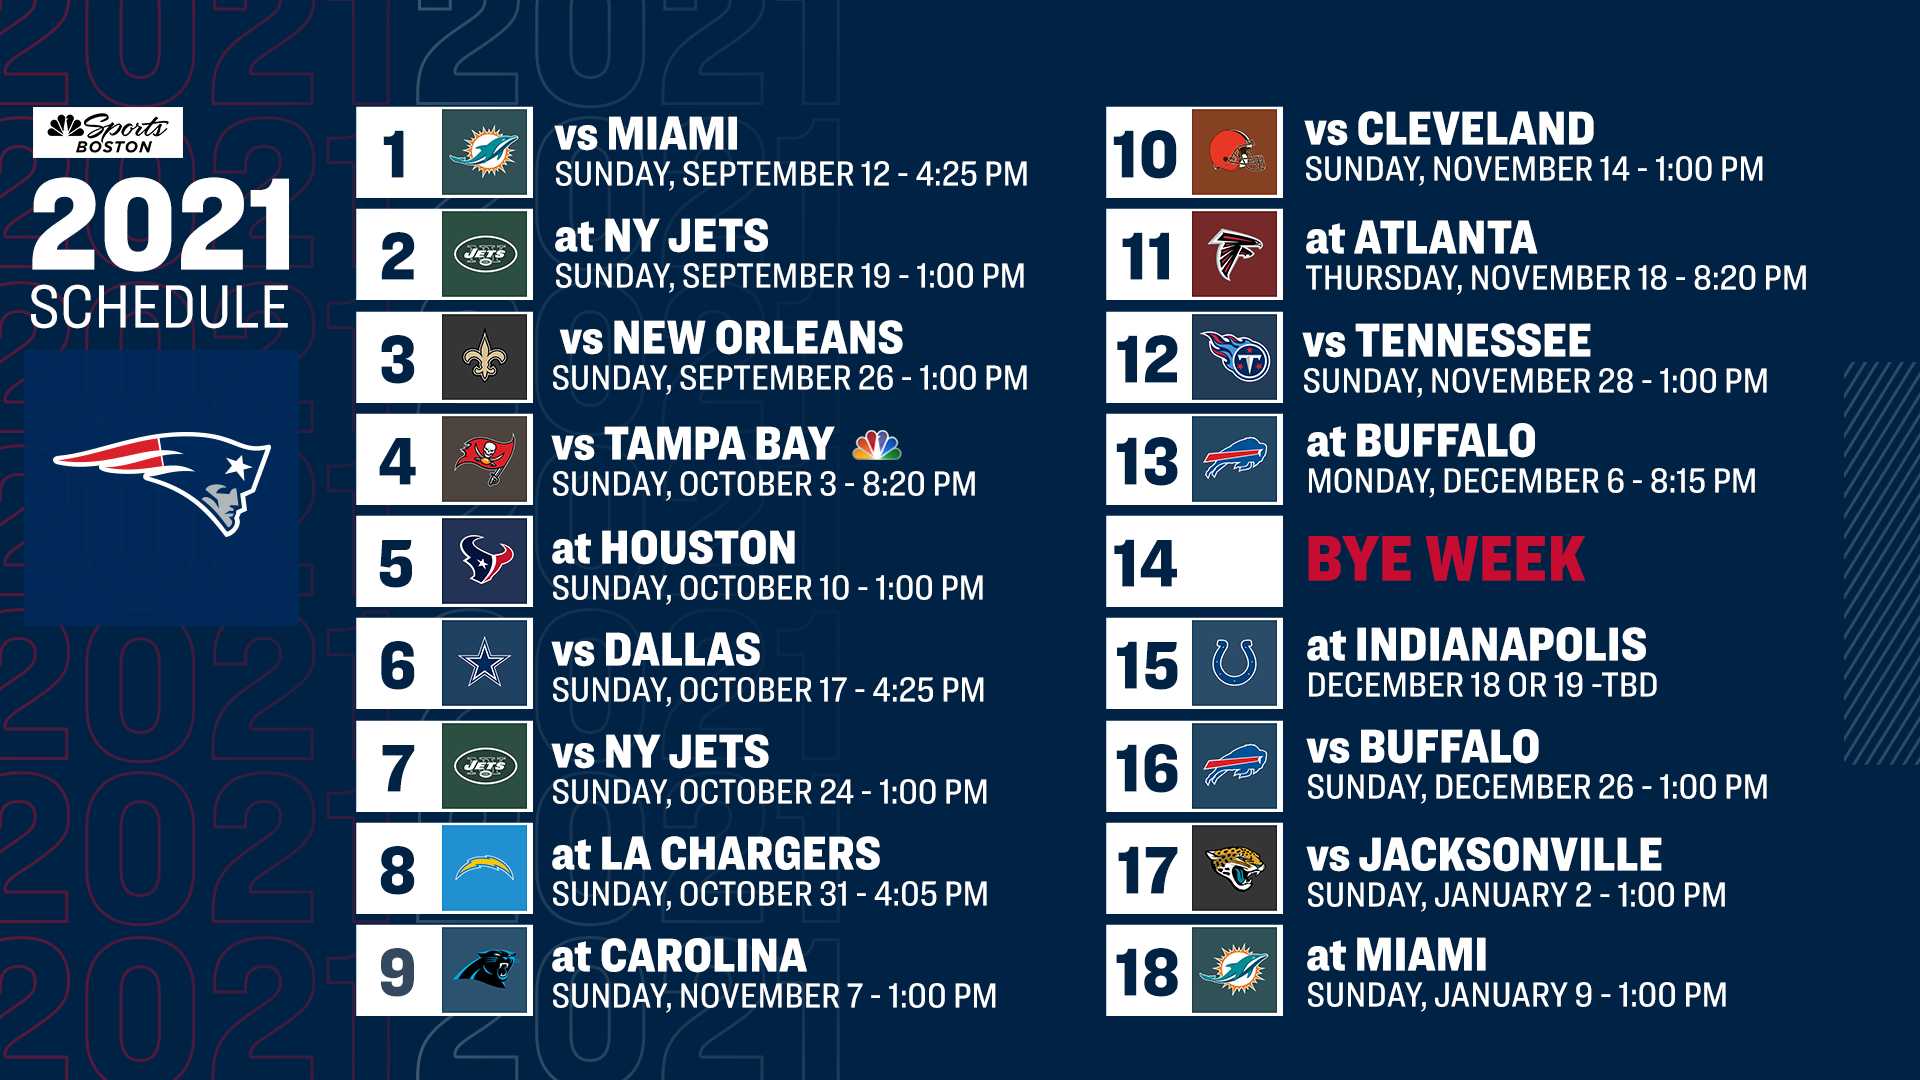 Patriots 2021 schedule: Game predictions for all 17 matchups | RSN